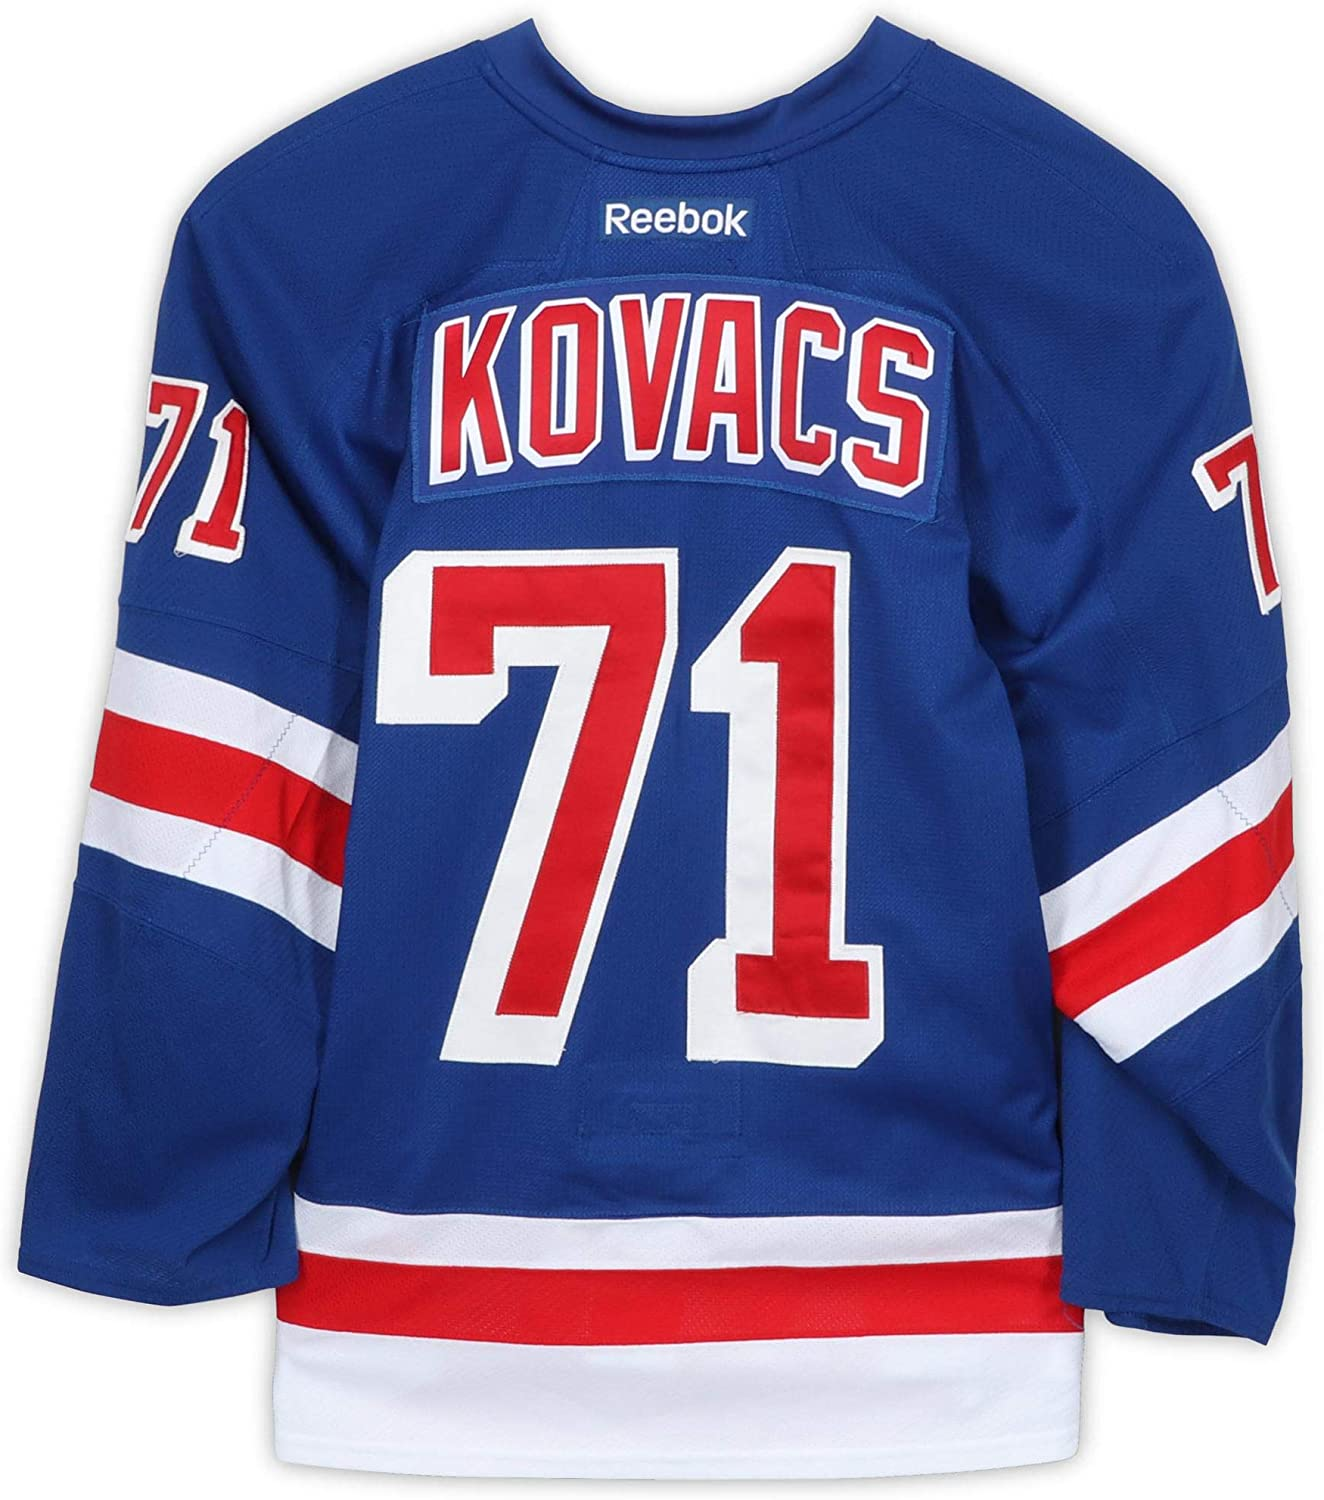 Robin Kovacs New York Rangers Game-Used #71 Blue Jersey from the 2016-17 NHL Preseason - Size 56 - Fanatics Authentic Certified